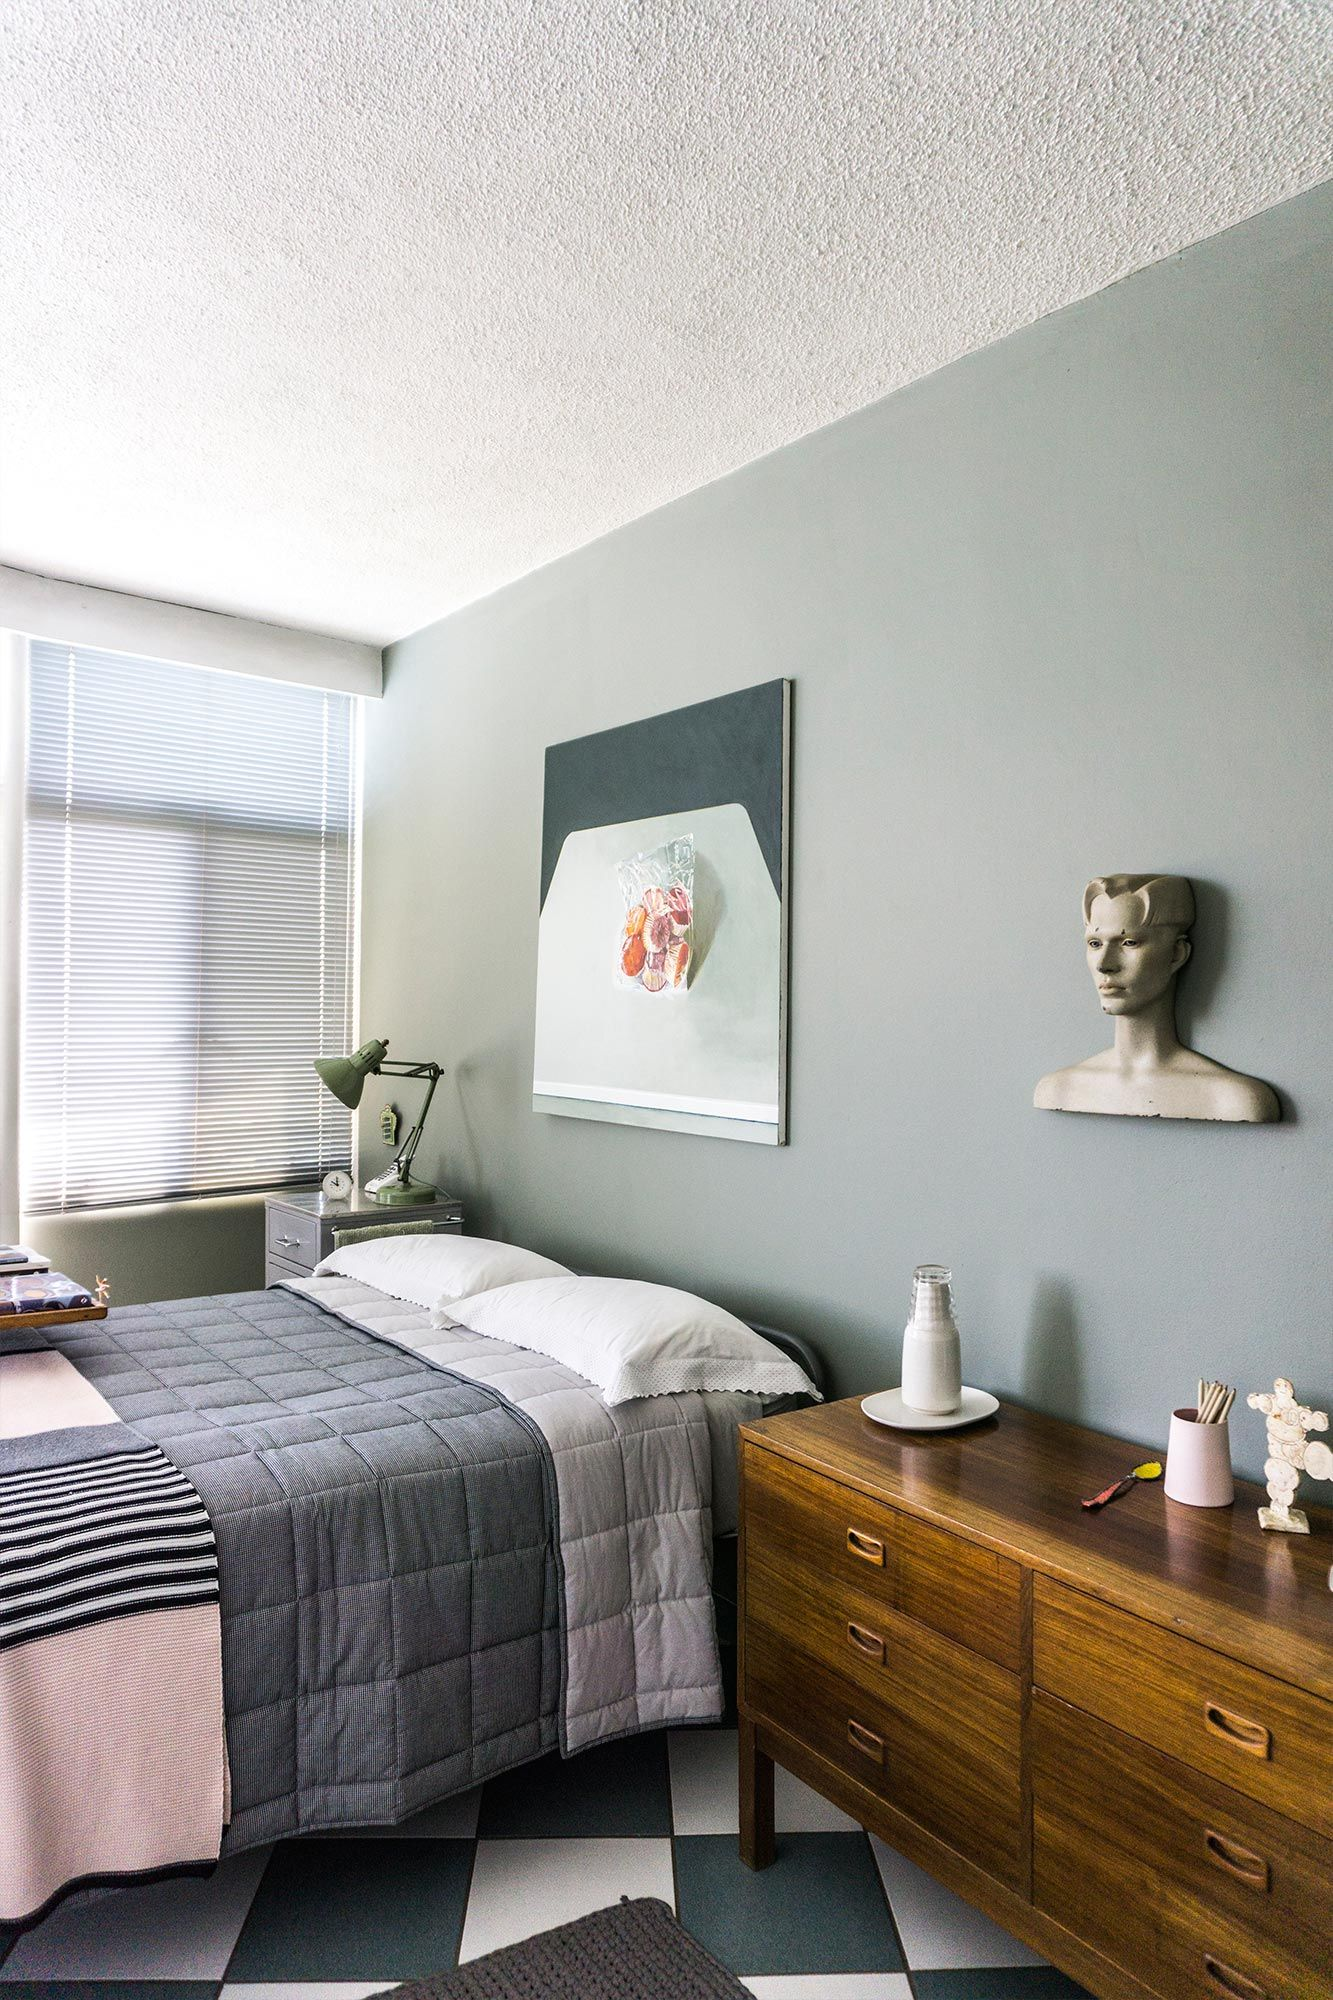 Grey-green walls combined with blue and pink decor elements ...